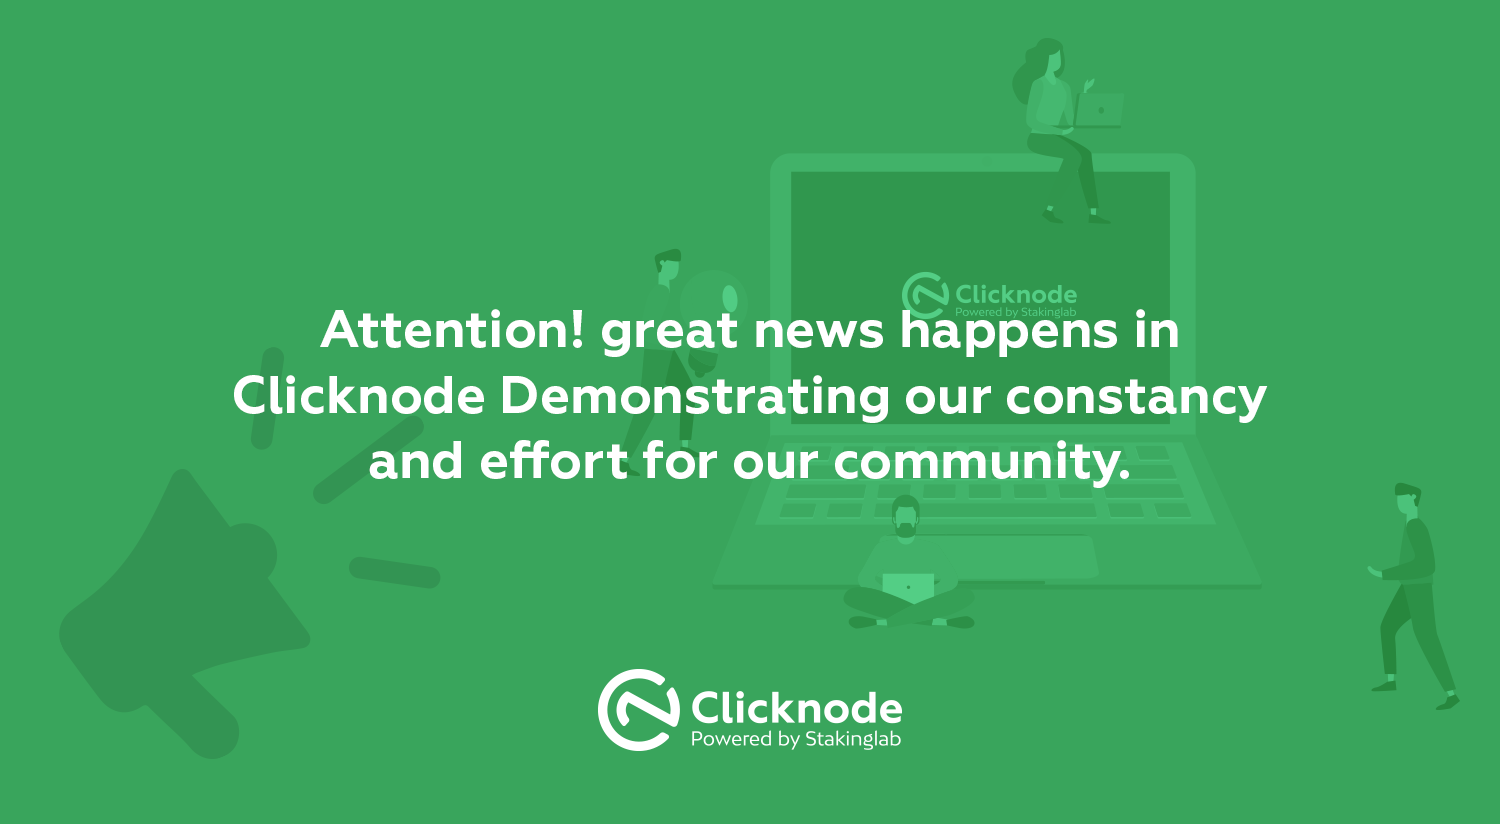 Great news happens on Clicknode, Demonstrating our constancy and effort for our community.